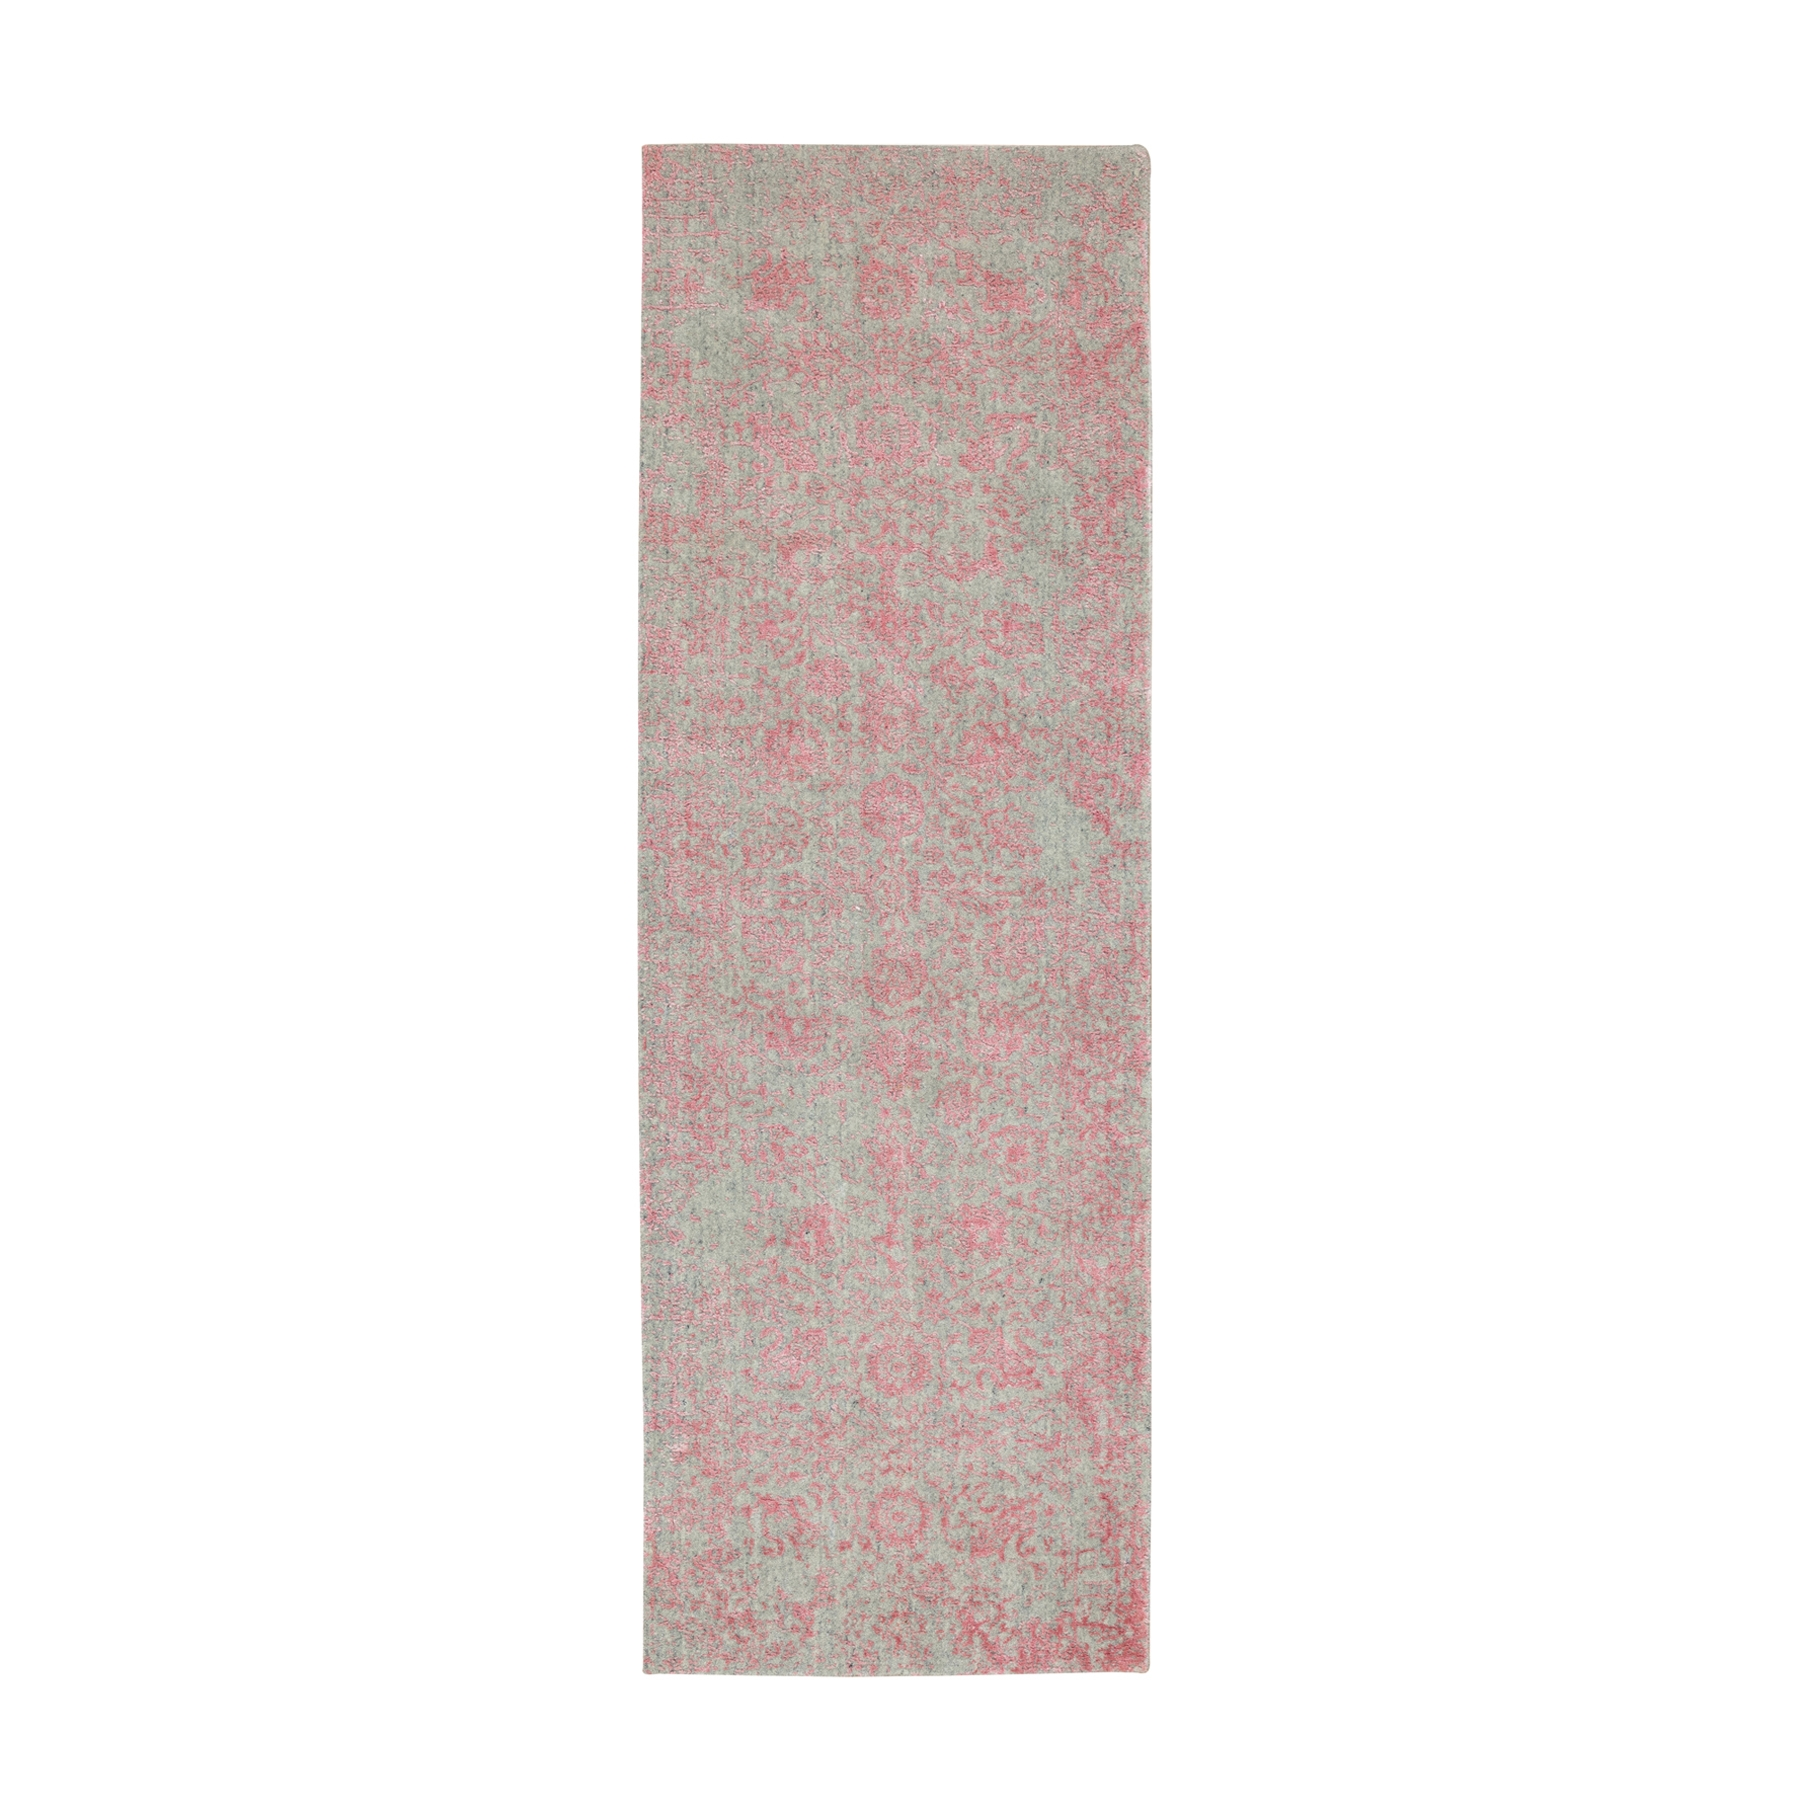 """2'6""""X8'1"""" Pink Transitional Design Wool And Art Silk Hand Loomed Jacquard Oriental Rug moae8e88"""